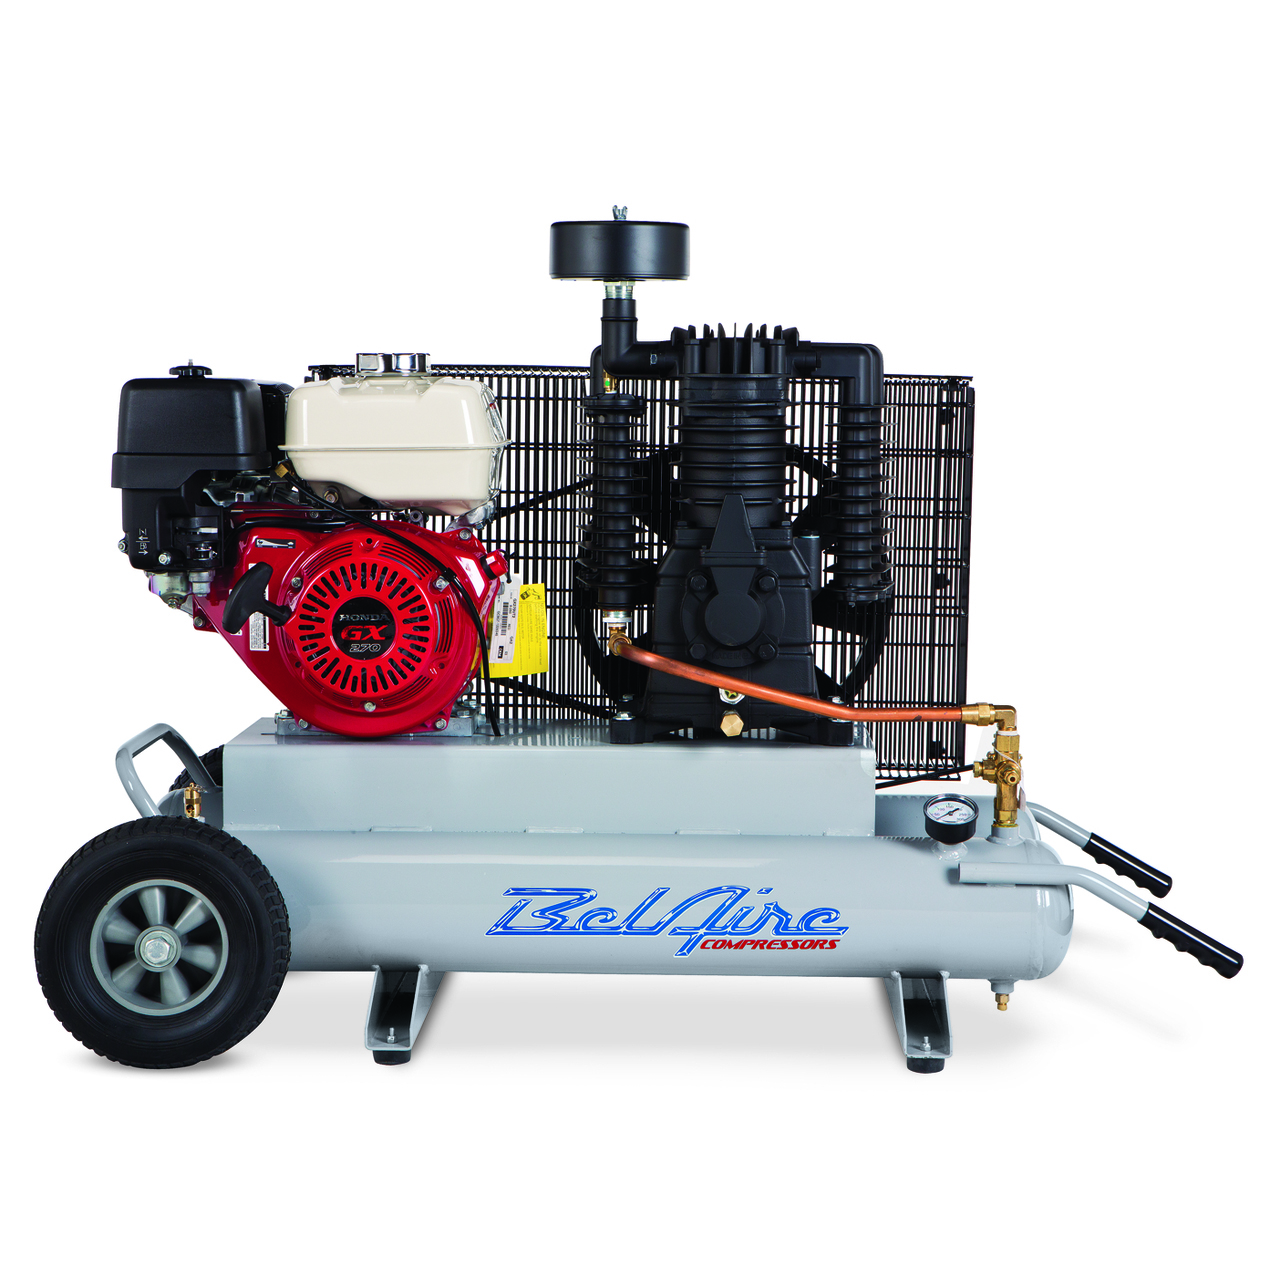 BelAire TH908 9-HP 2x5-Gallon Portable Gas Powered